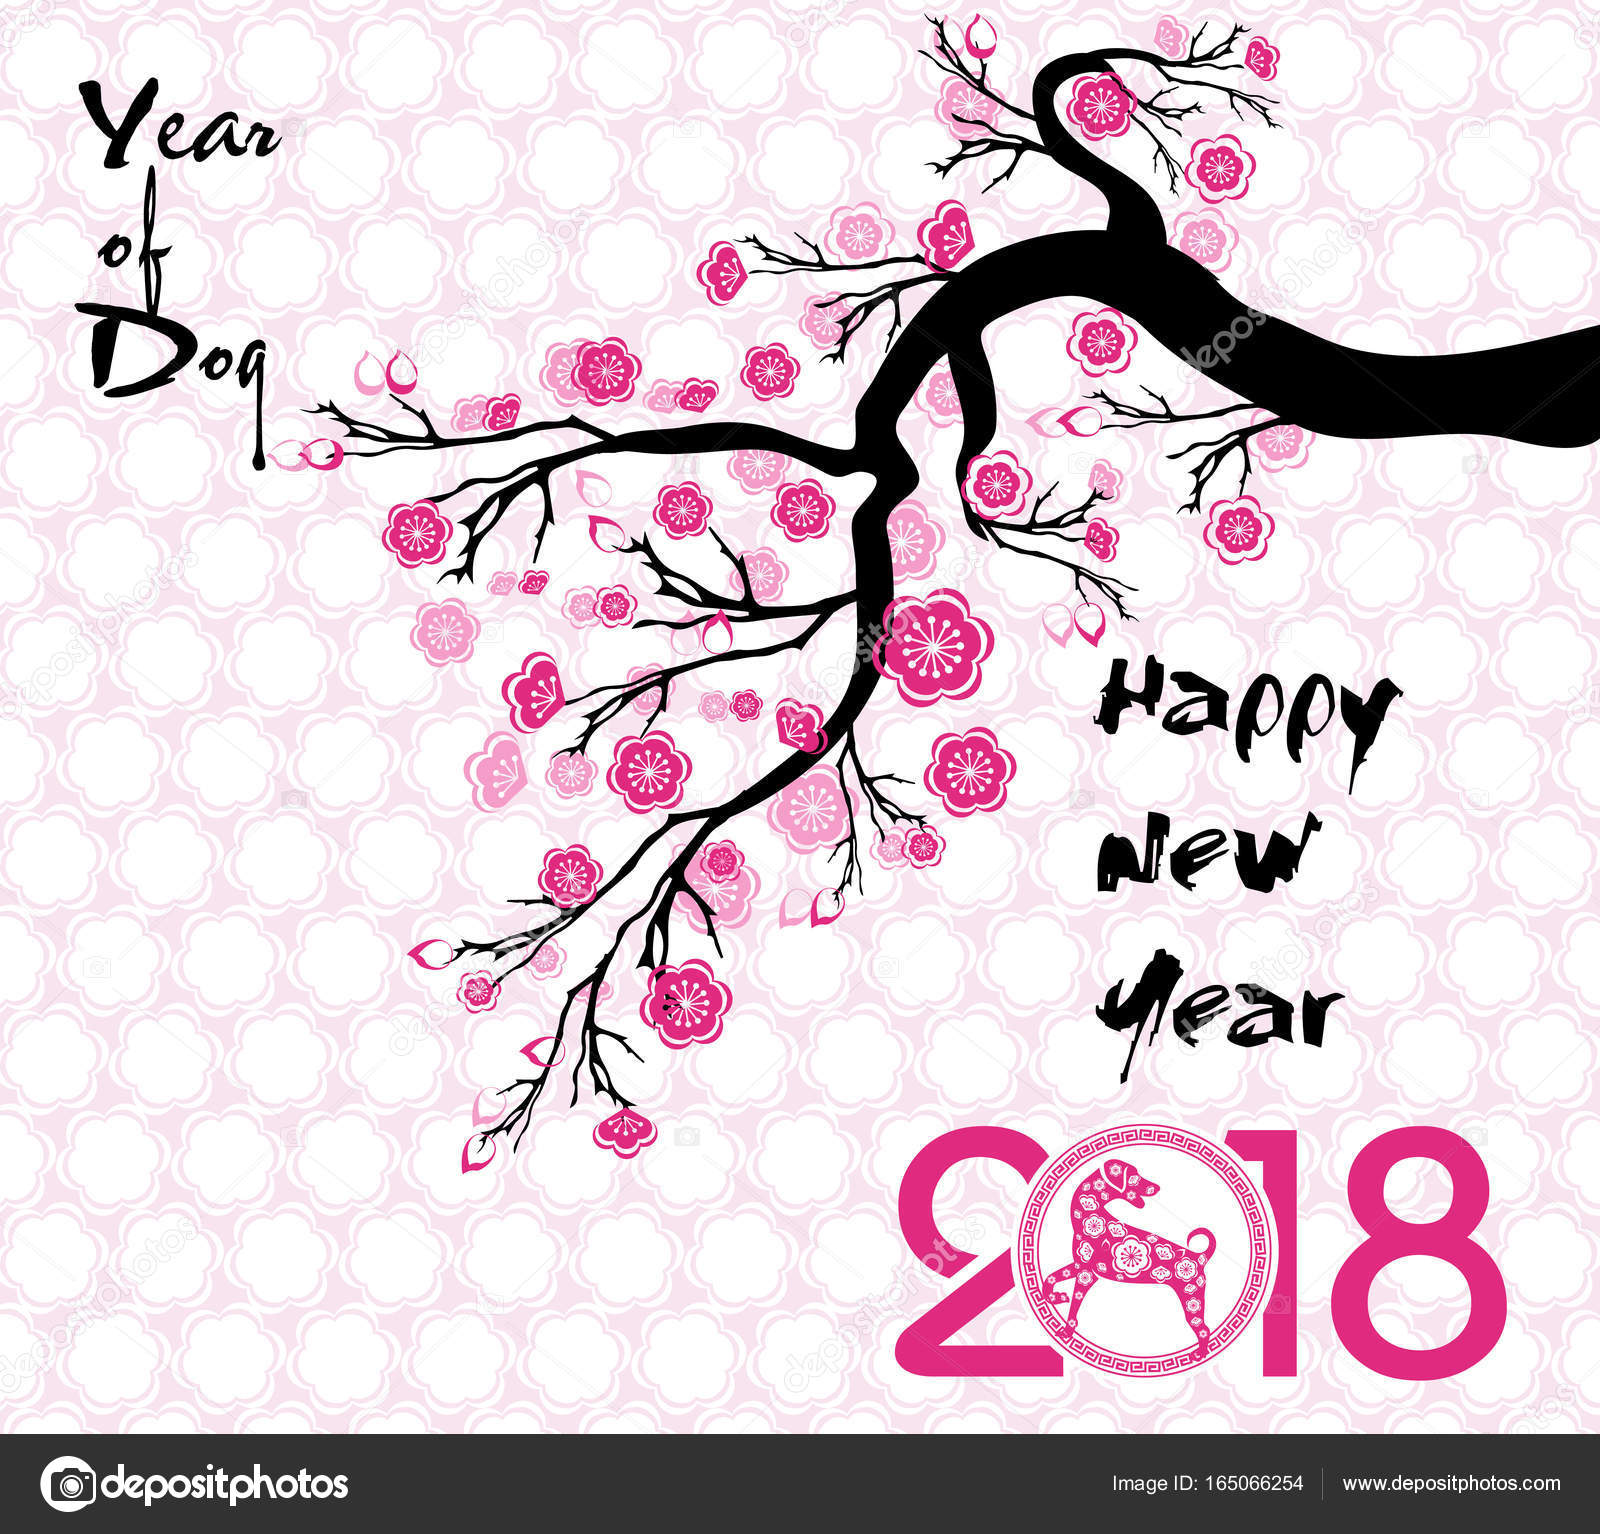 happy new year 2018 year of the dog chinese new year lunar new year - Chinese New Year 2018